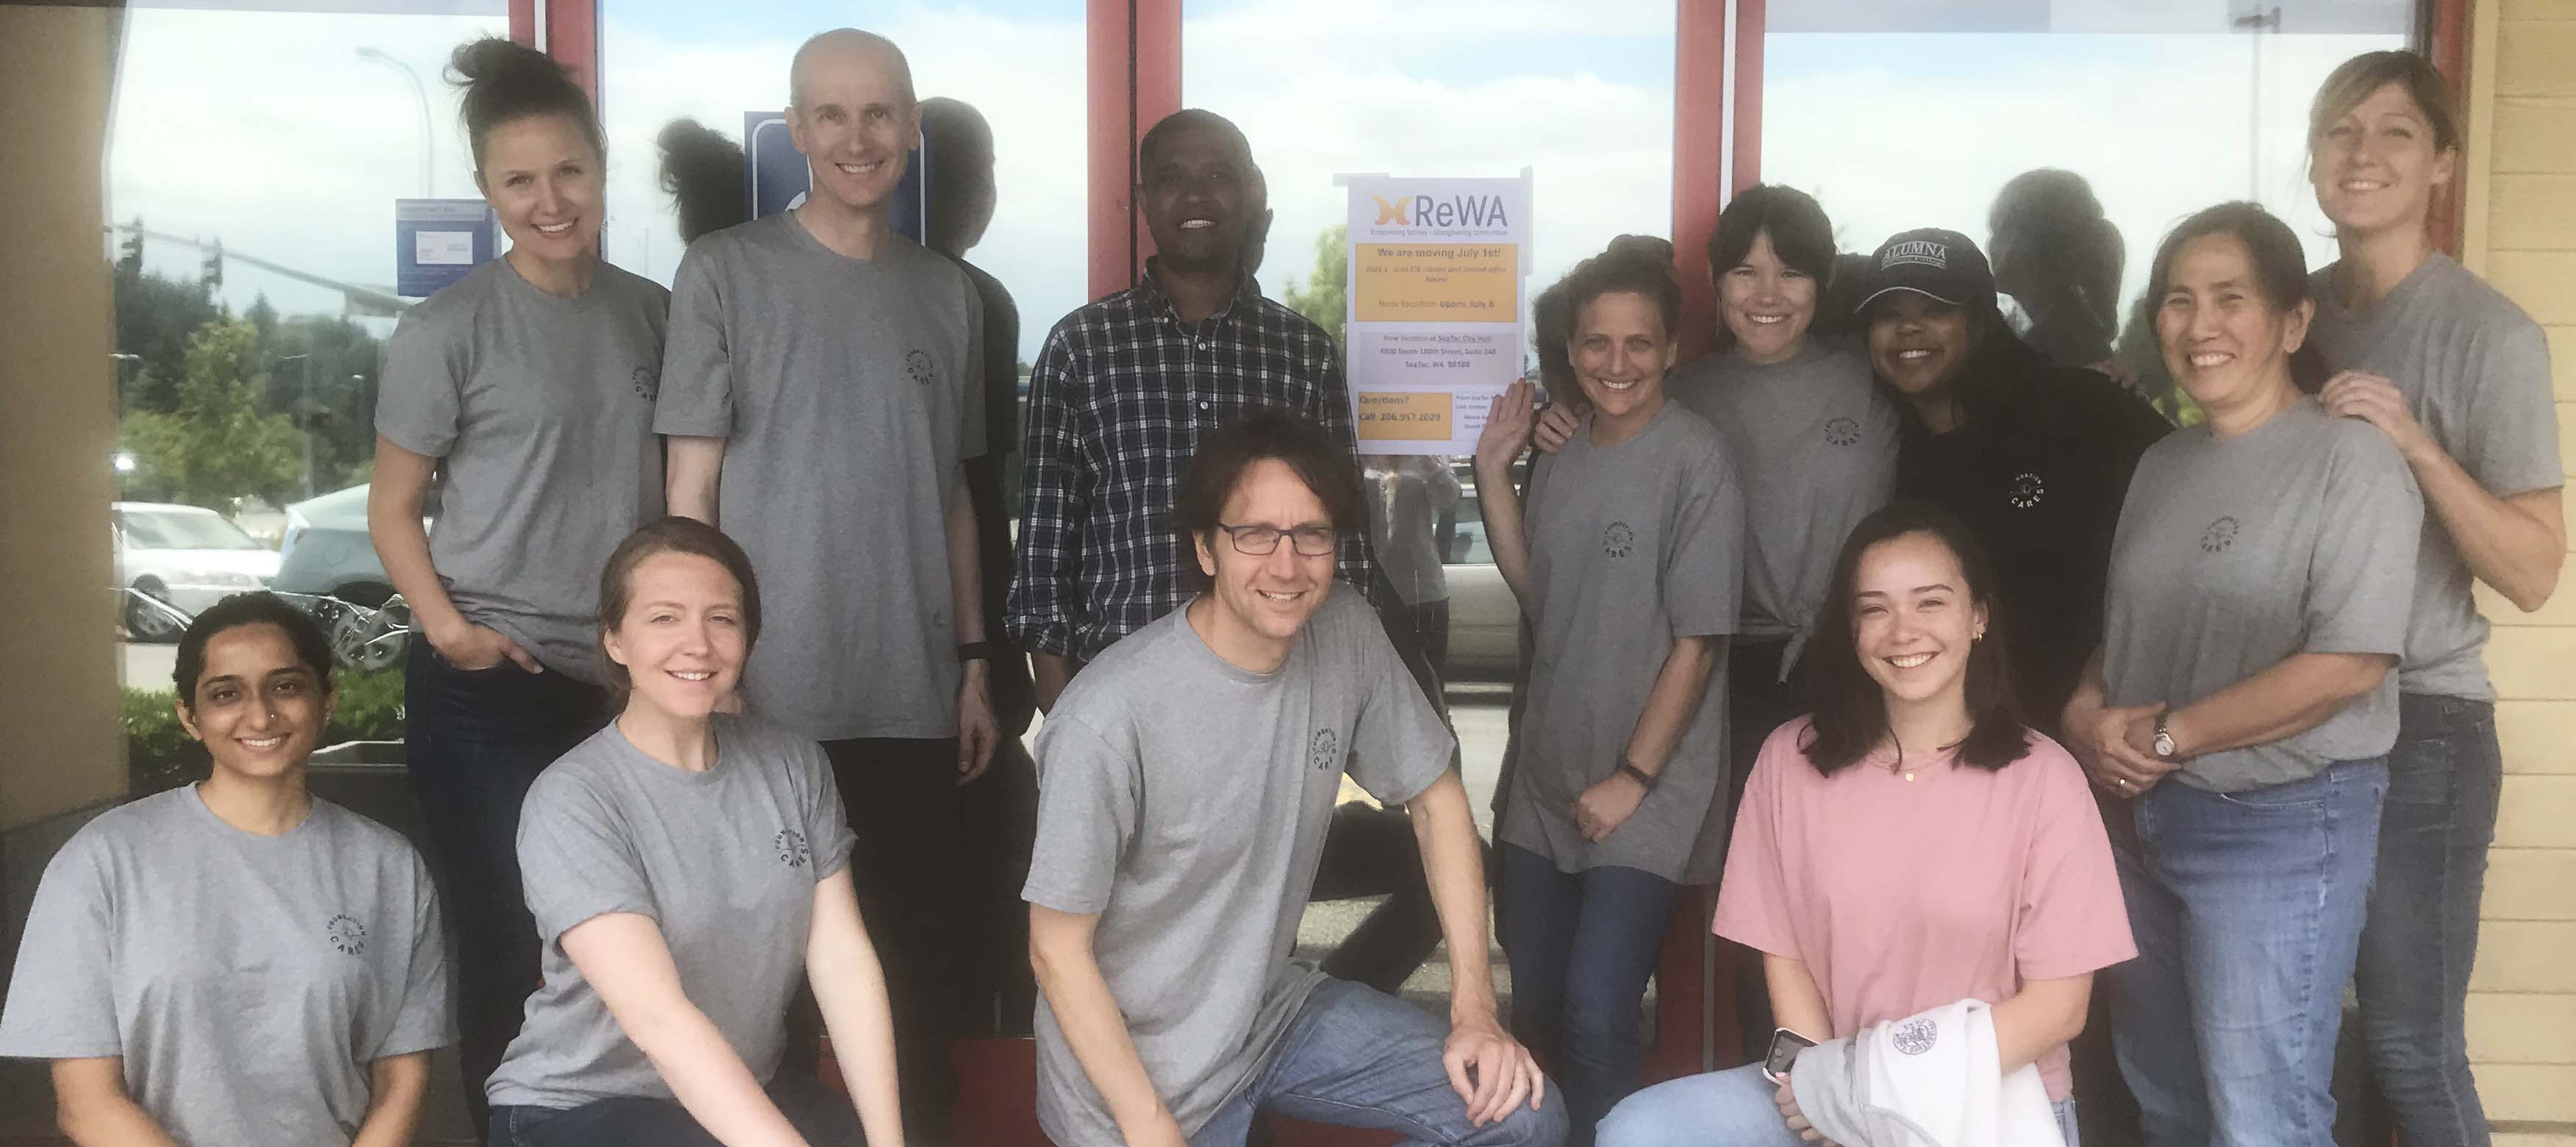 Gates Foundation Day of Caring volunteers pose for a group photo at ReWA's SeaTac office.